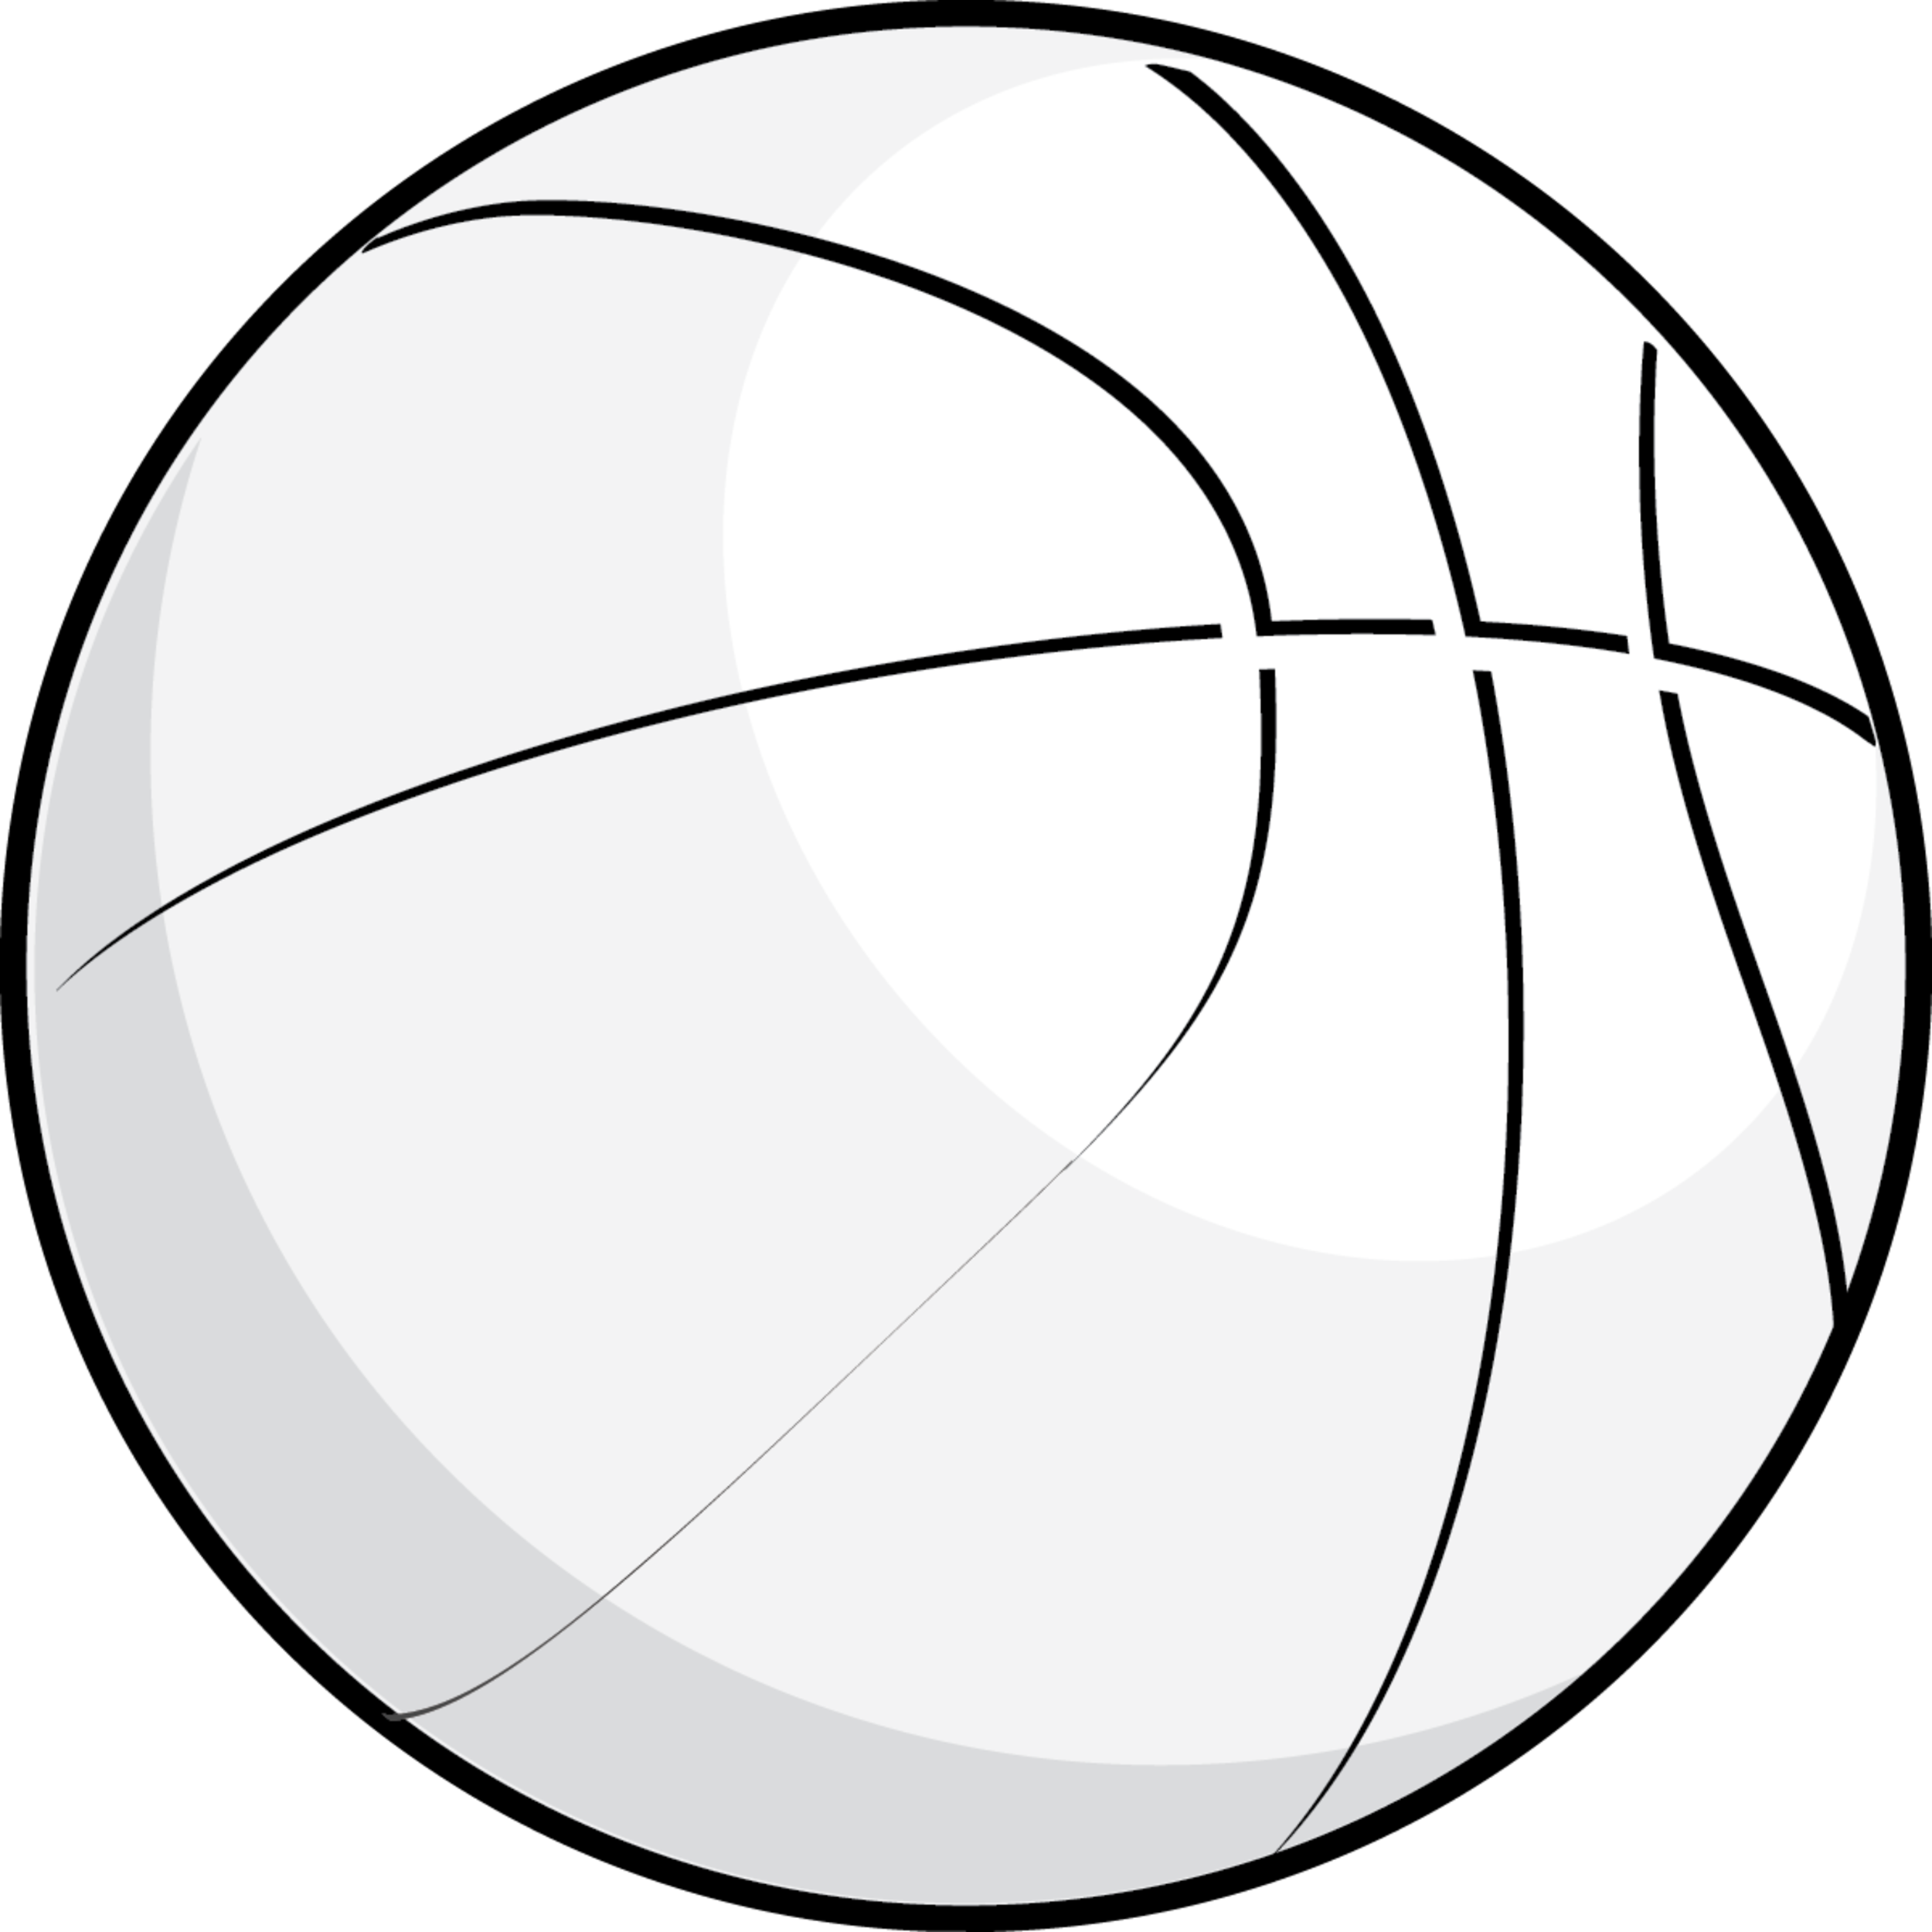 1322 Basketball Clipart Black And White Basketball Clipart Black.